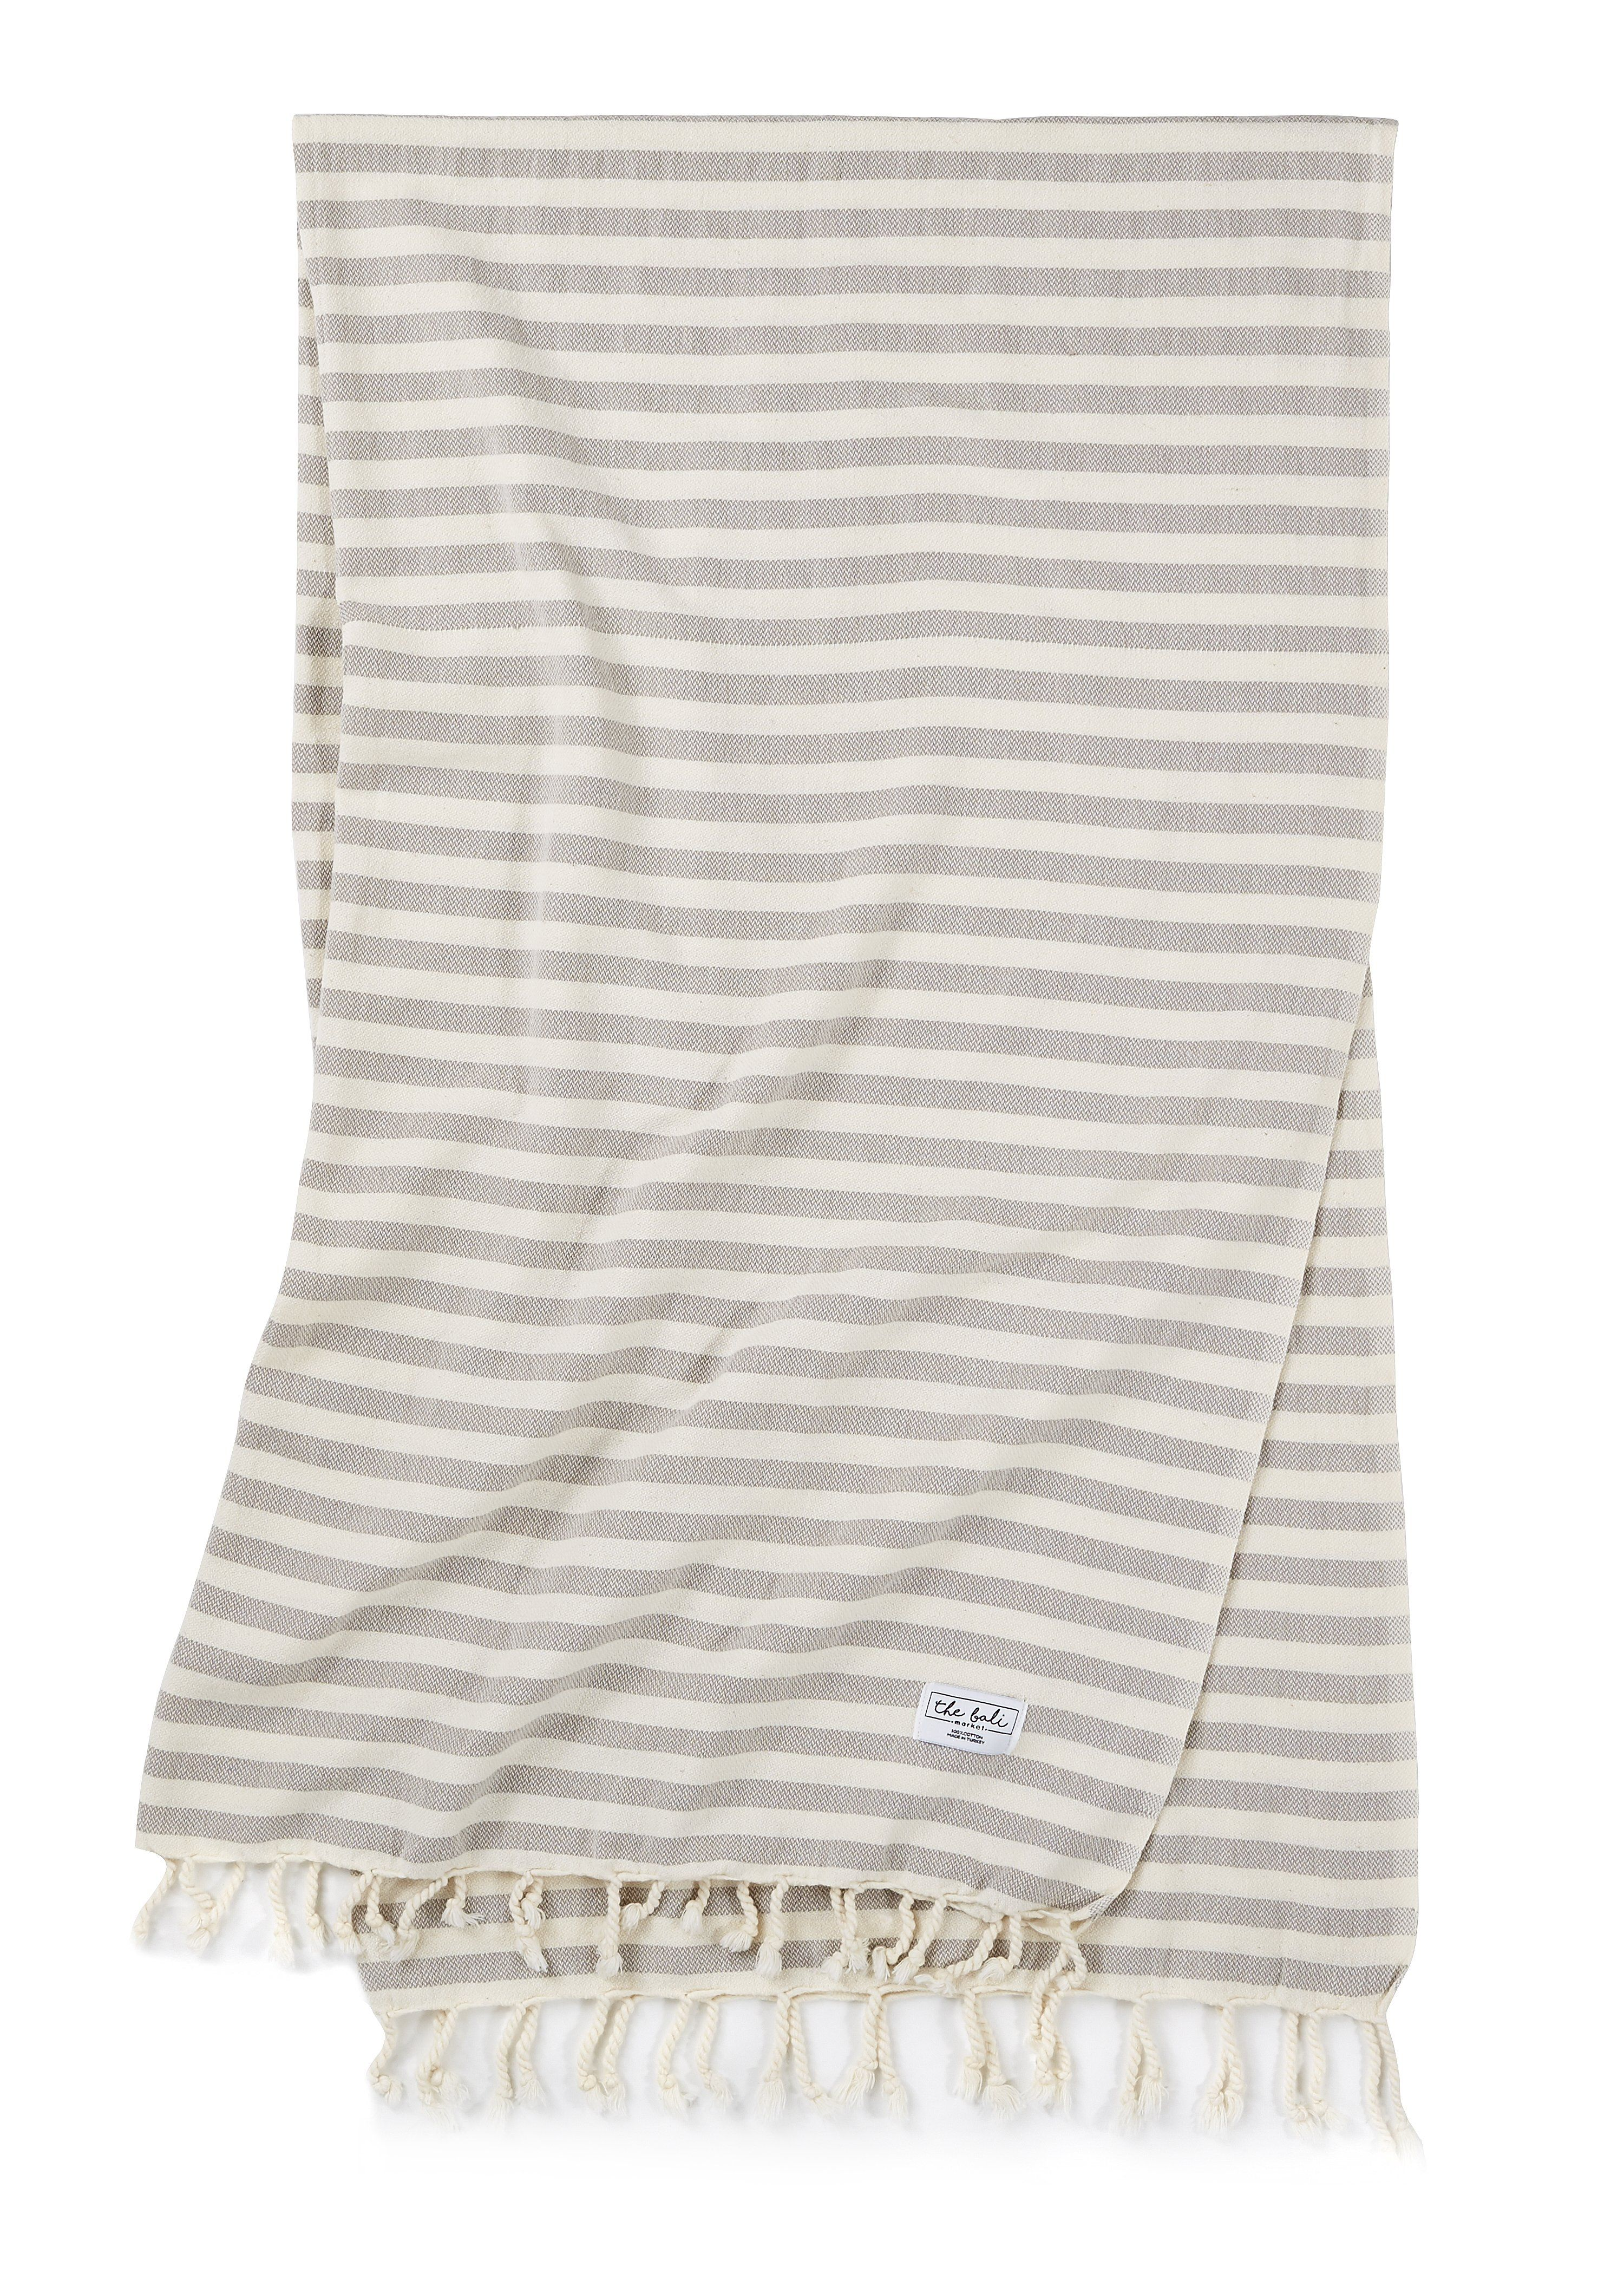 The Bath Towel With Beach Style The Saltwater Stripe Is A Fun